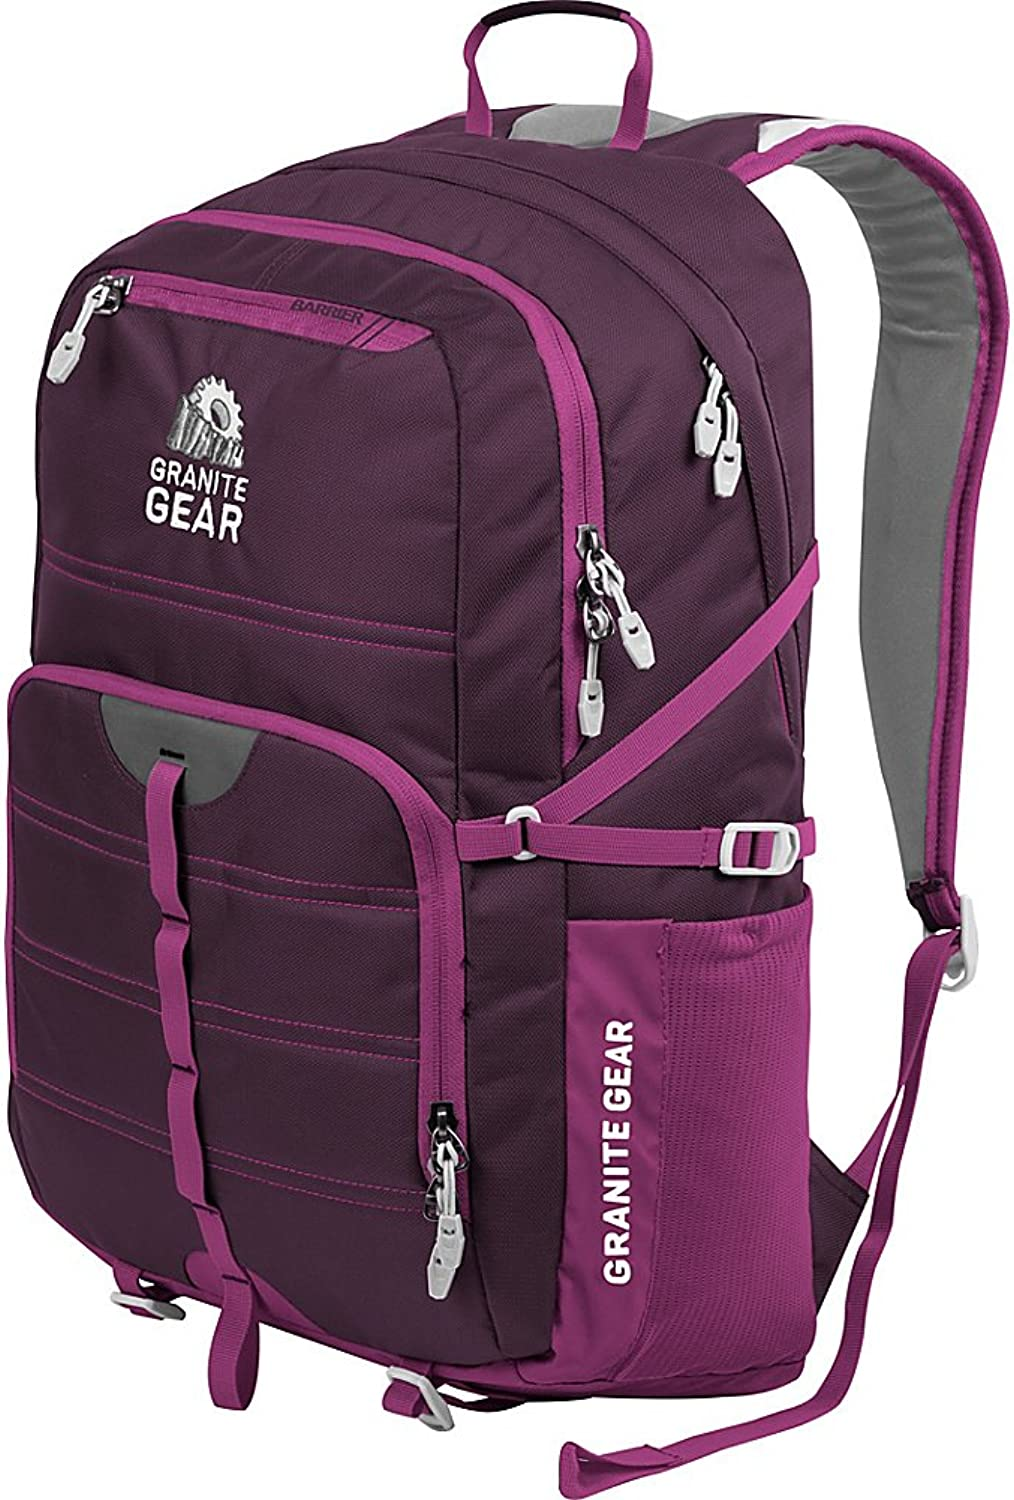 GRANITE GEAR Campus Grenze Rucksack